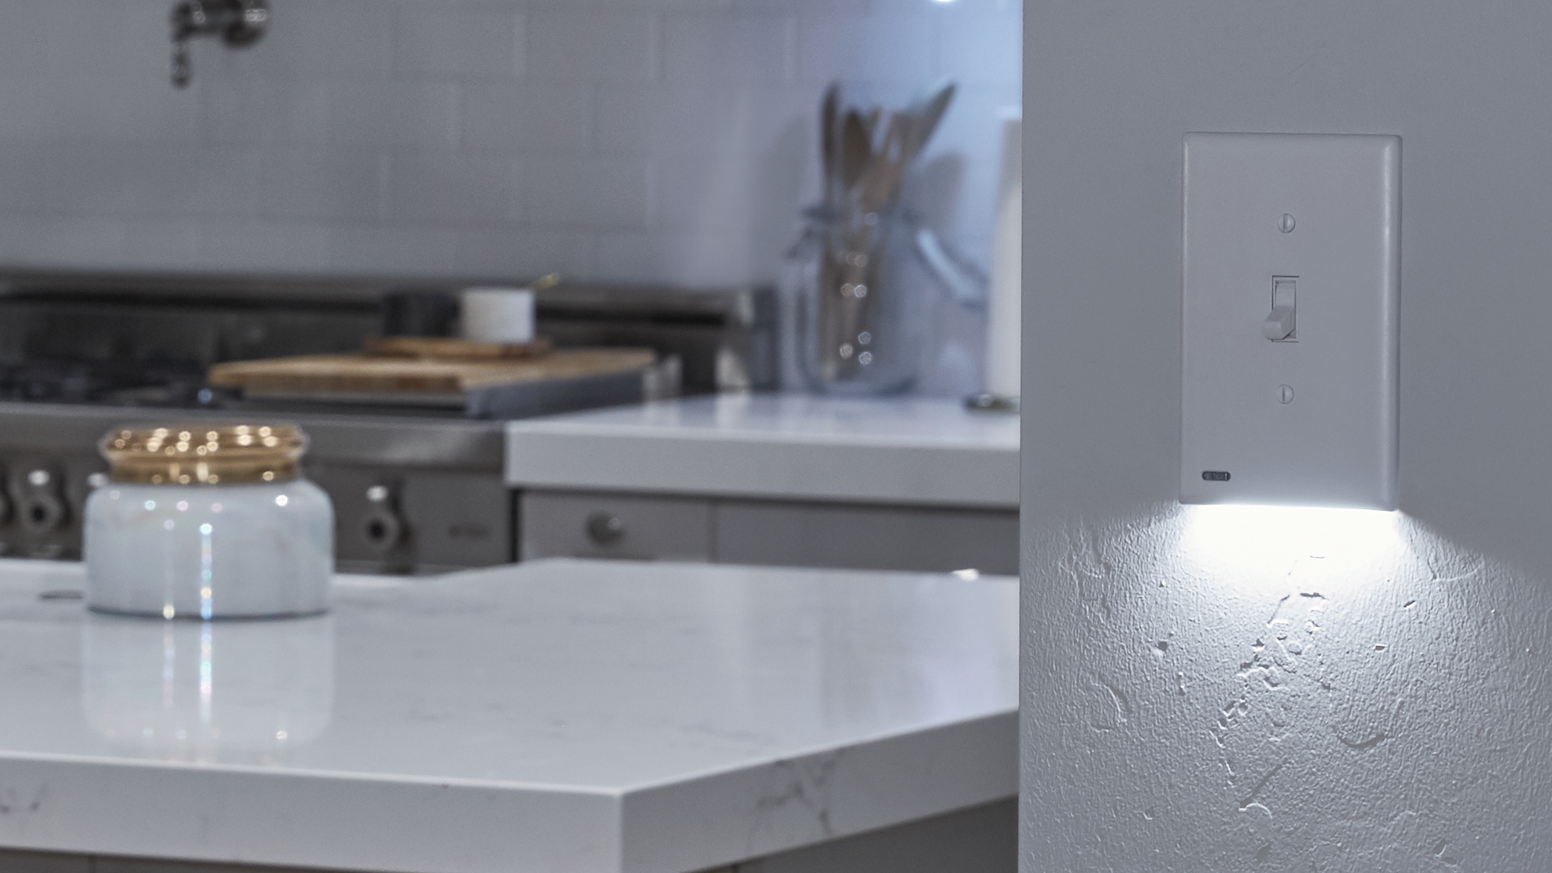 Led night light kickstarter - The Snappower Switchlight Is A Light Switch Cover That Doubles As A Night Light It